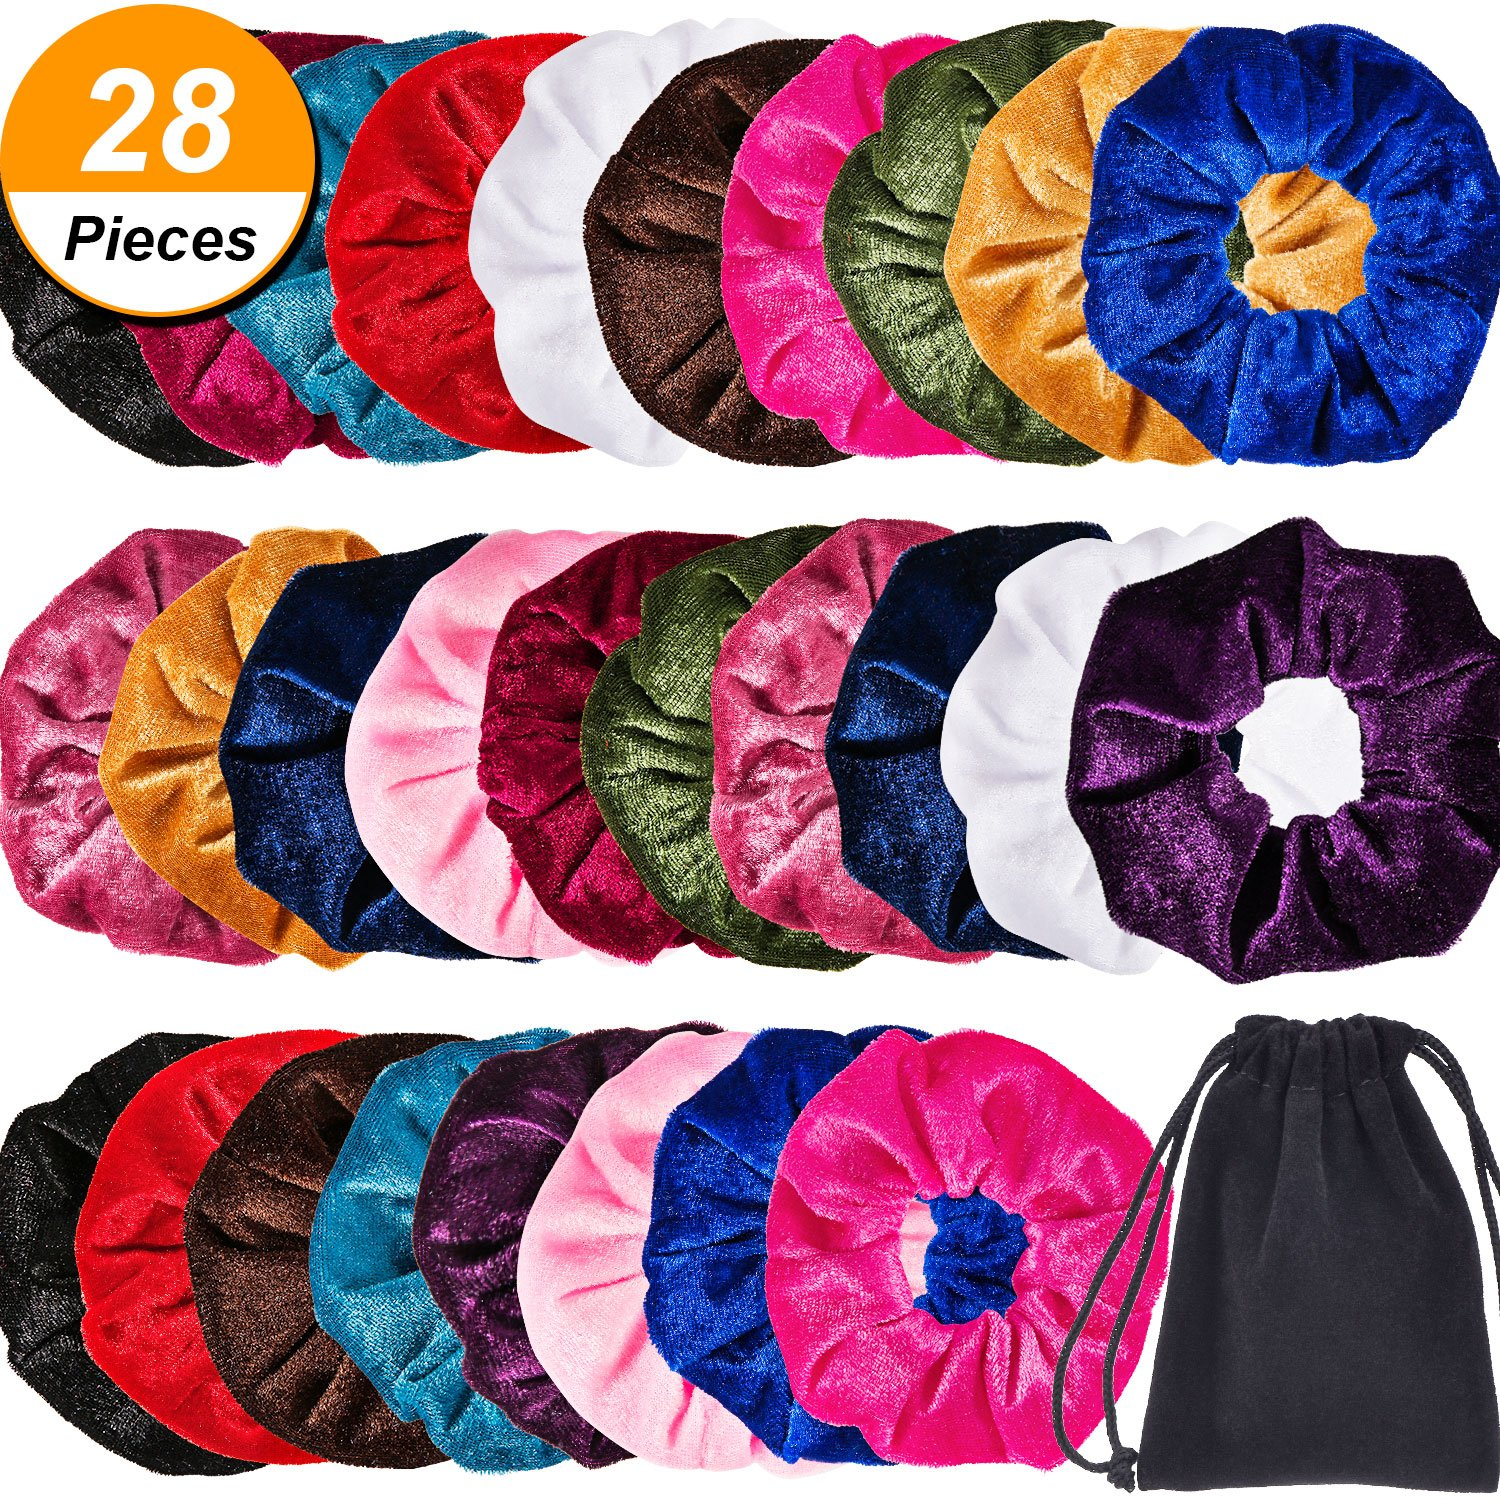 28 Pieces Velvet Scrunchies Hair Ties Hair Elastics Scrunchies Velvet Scrunchy Soft Elegant Hair Bands Headbands with Bag Bememo